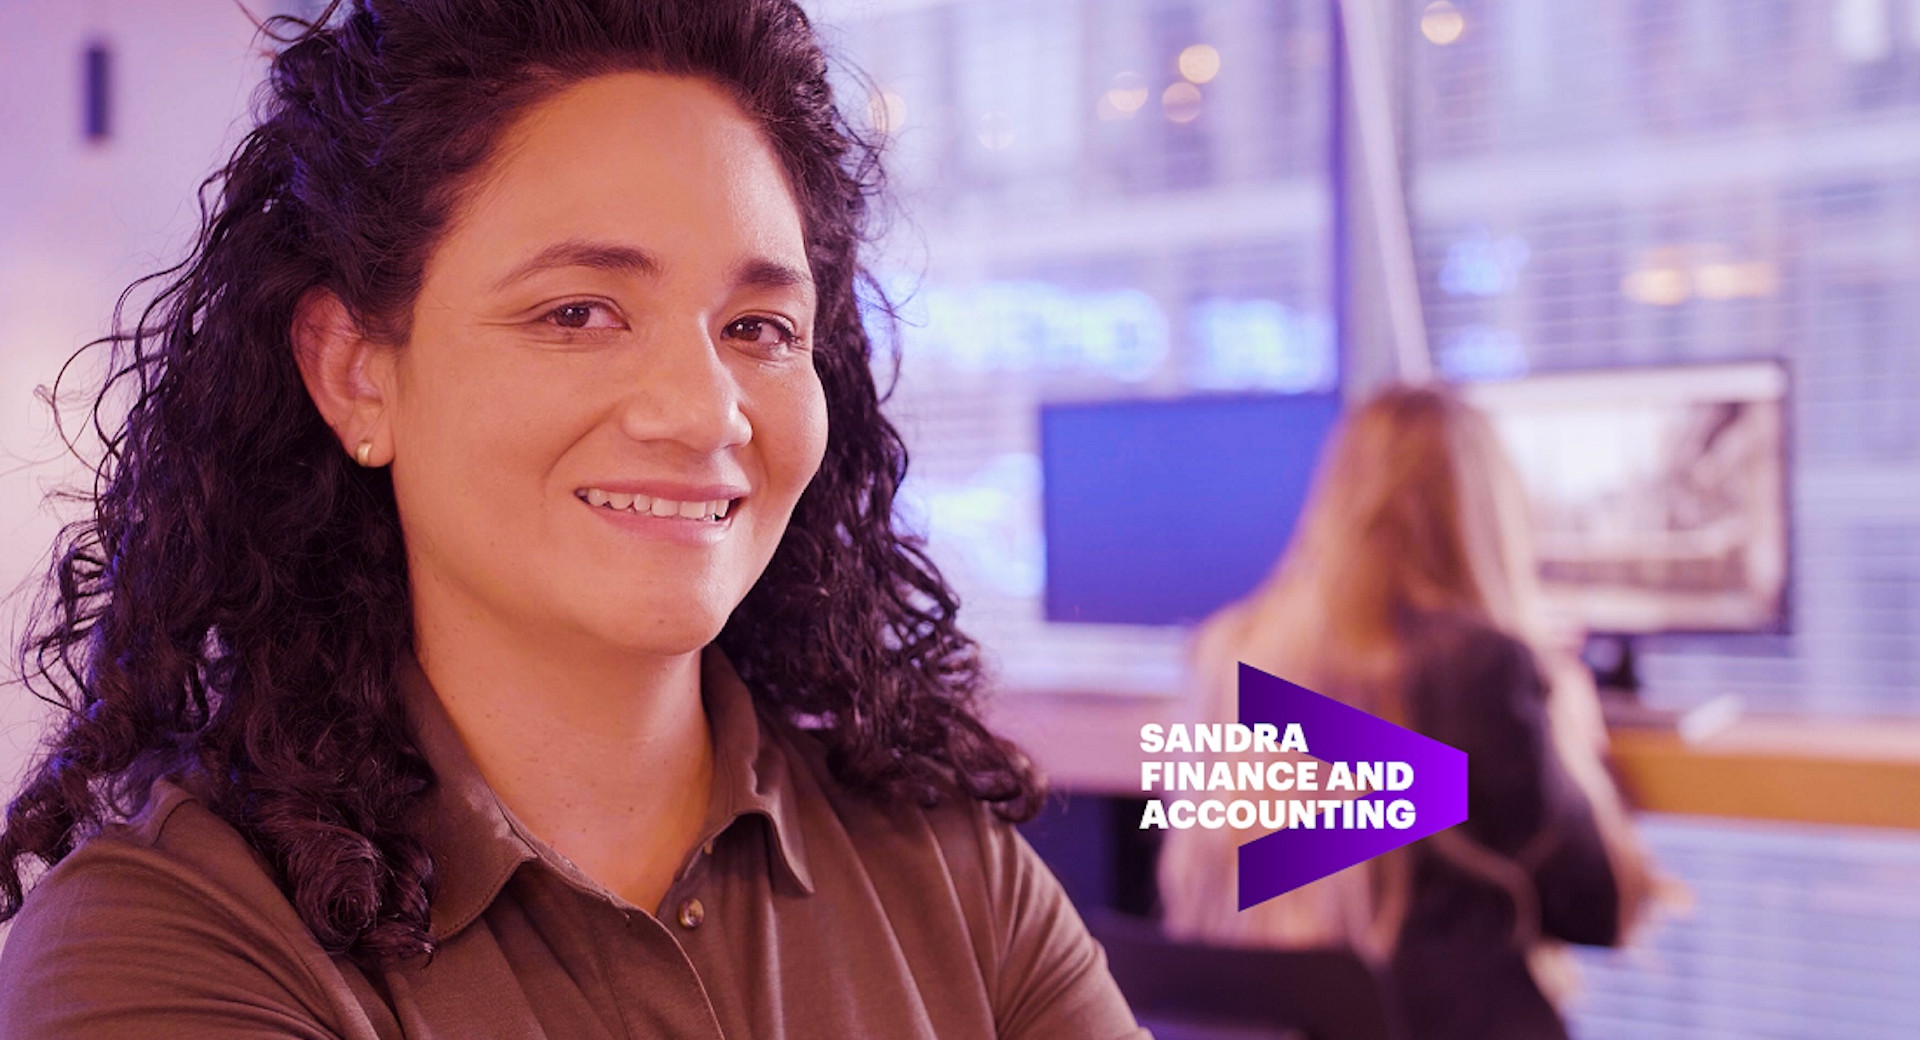 Sandra – Finance & Accounting, Accenture Operations Poland. Join us!